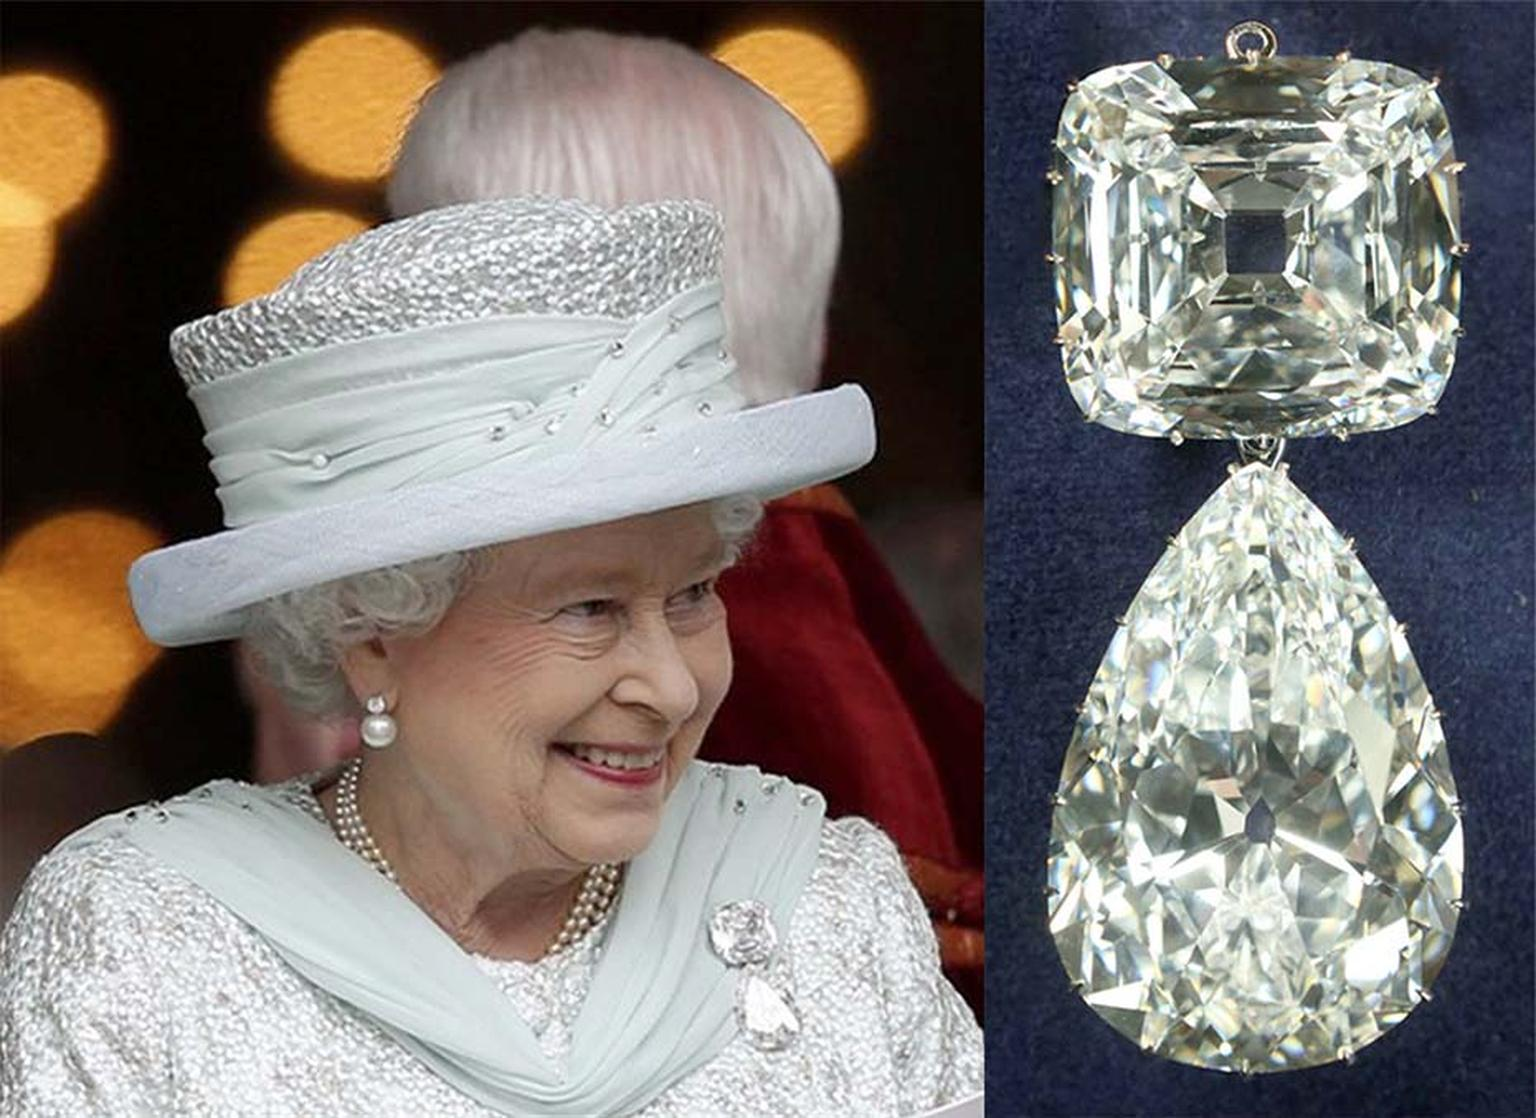 The third and fourth largest stones cut from the Cullinan diamond are known as Cullinan III and Cullinan IV and can be hooked together as a brooch. In 1953, The Queen inherited the brooch and wears it regularly.